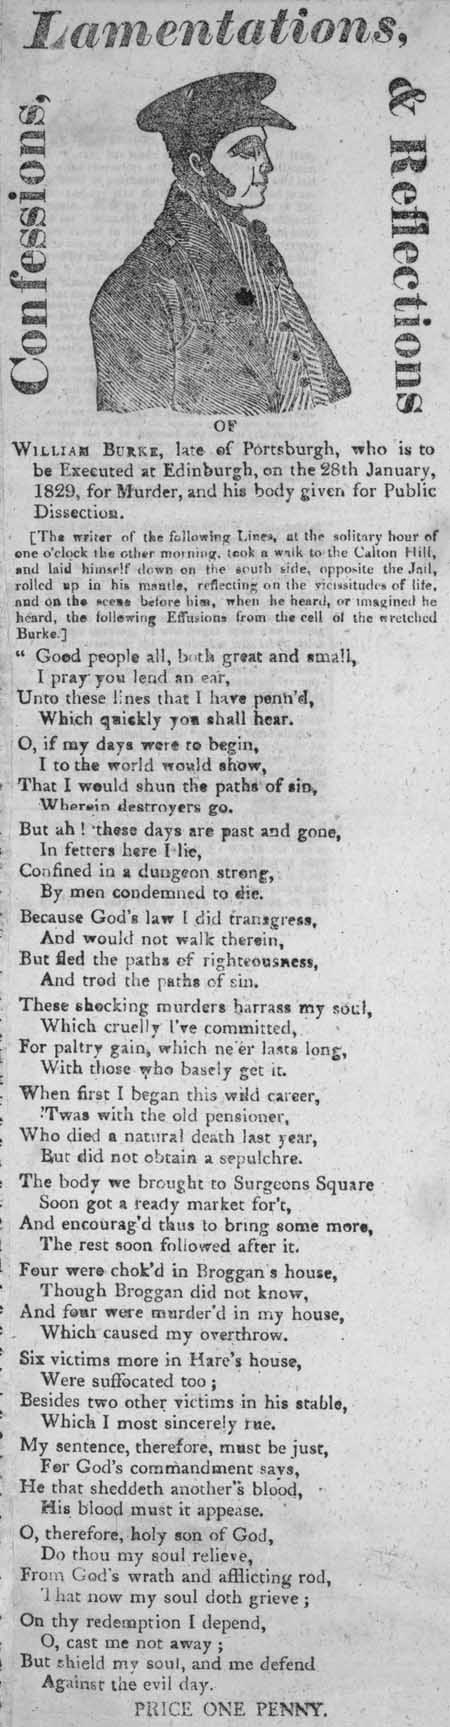 Broadside entitled 'Confessions, Lamentations, & Reflections of William Burke'